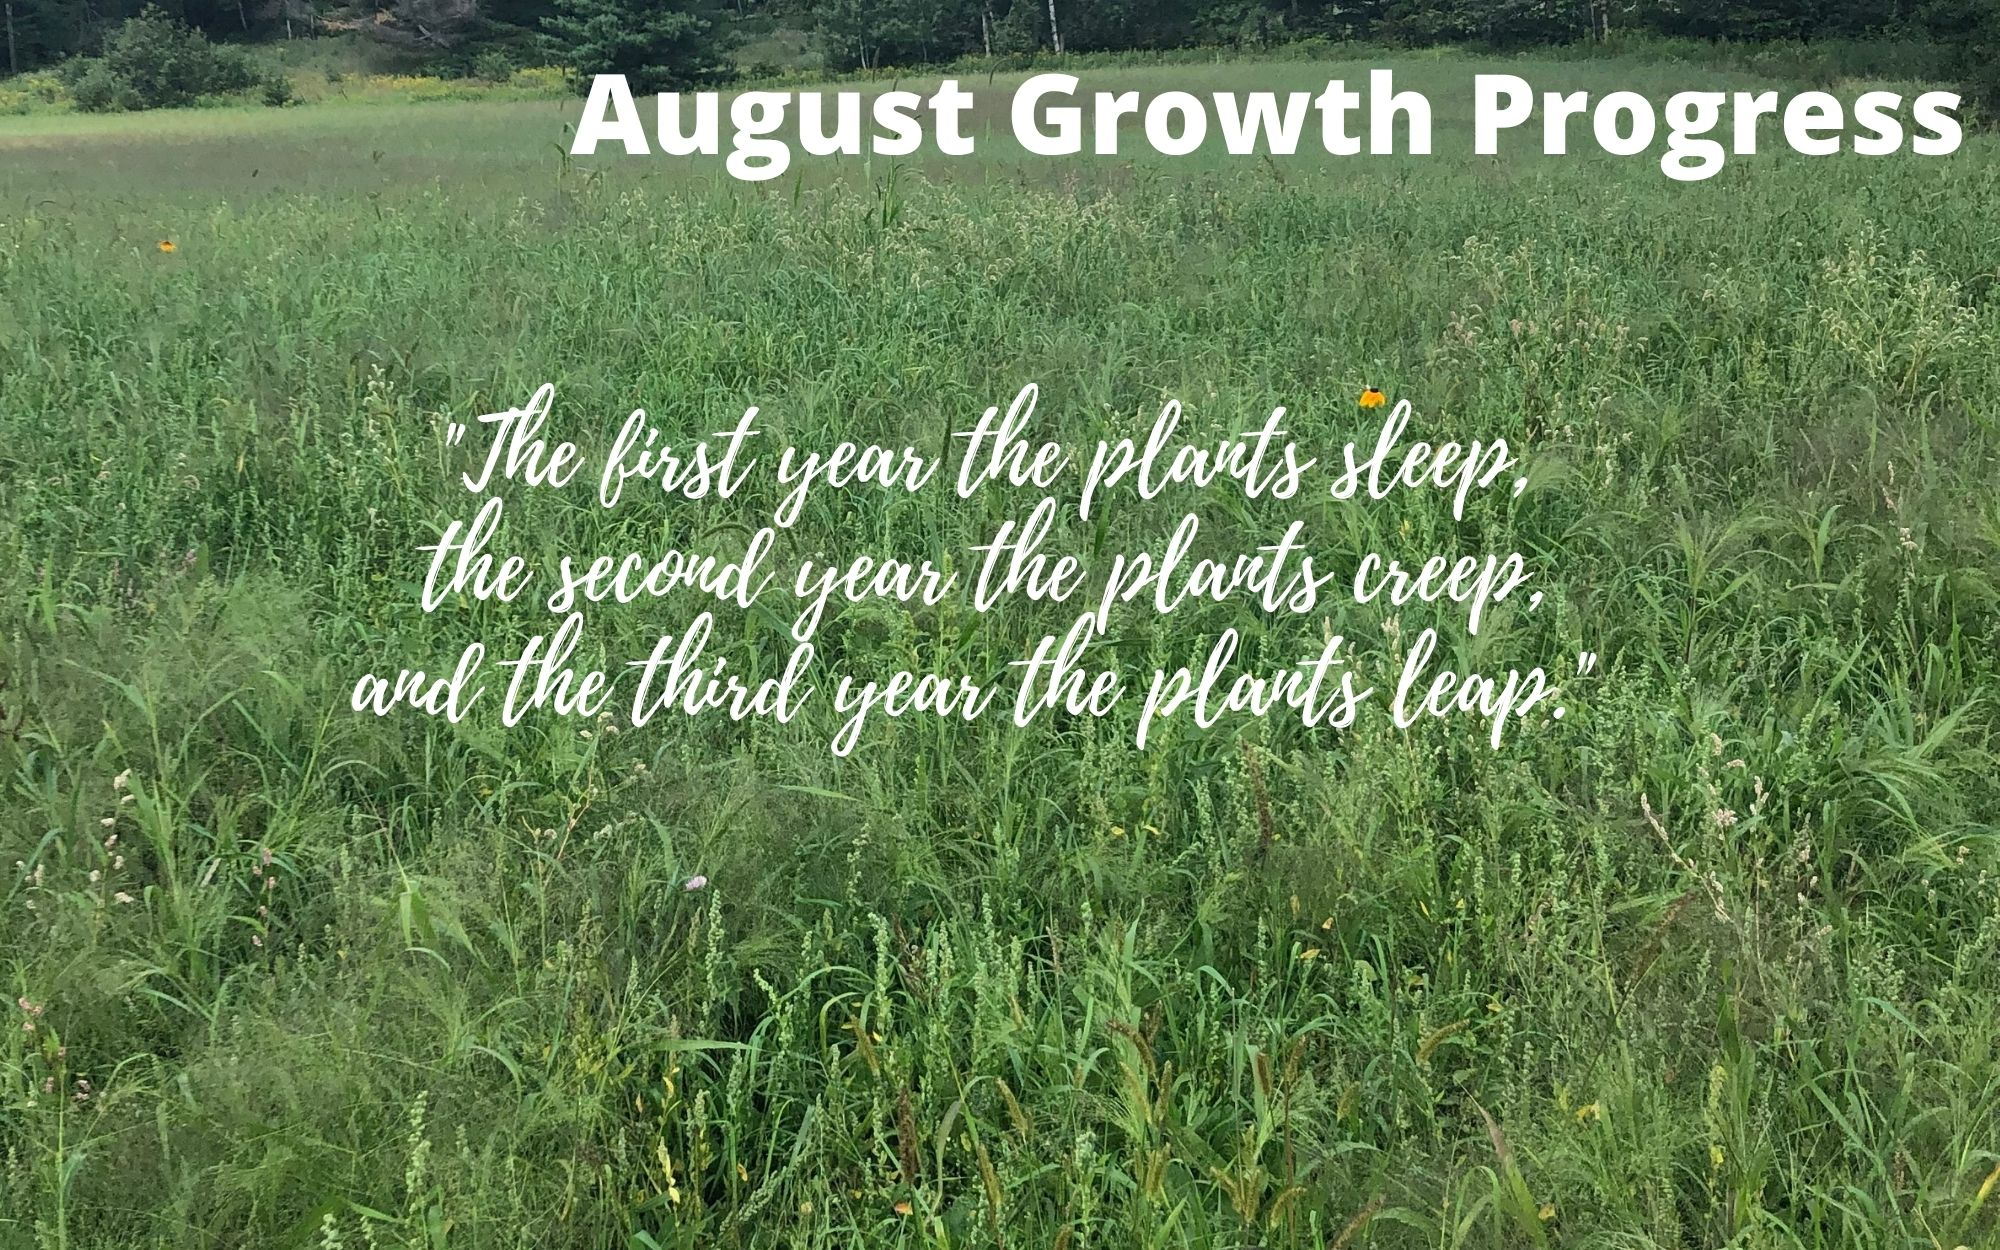 August Growth